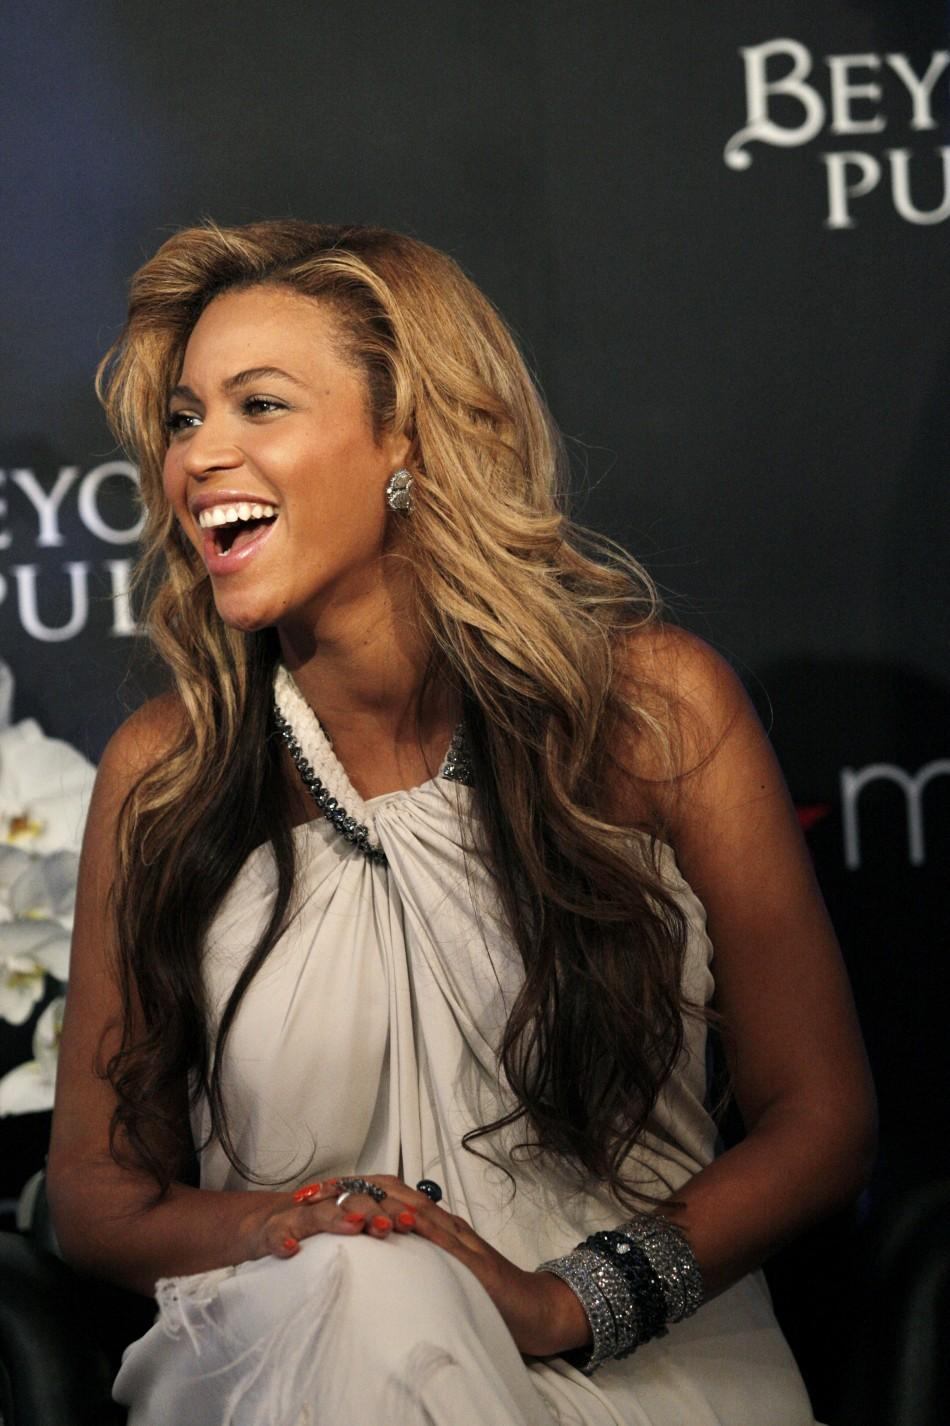 Singer Beyonce smiles during an event to debut her newest fragrance Beyonce Pulse at Macy's store in New York